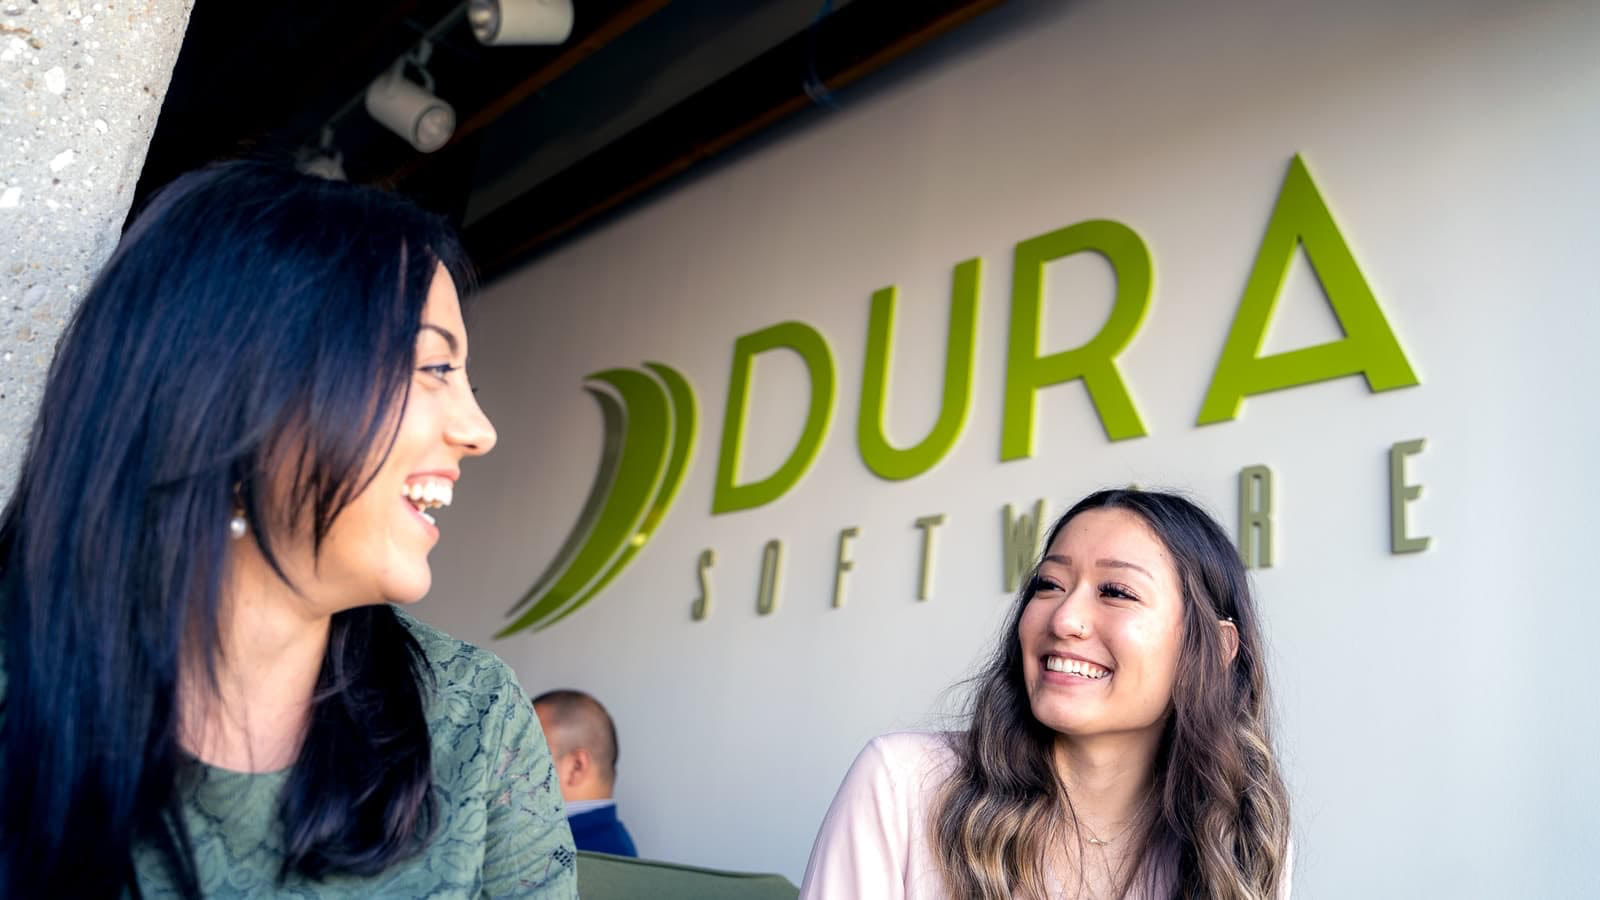 Two dura employees laughing with in front of a dura software wall sign.